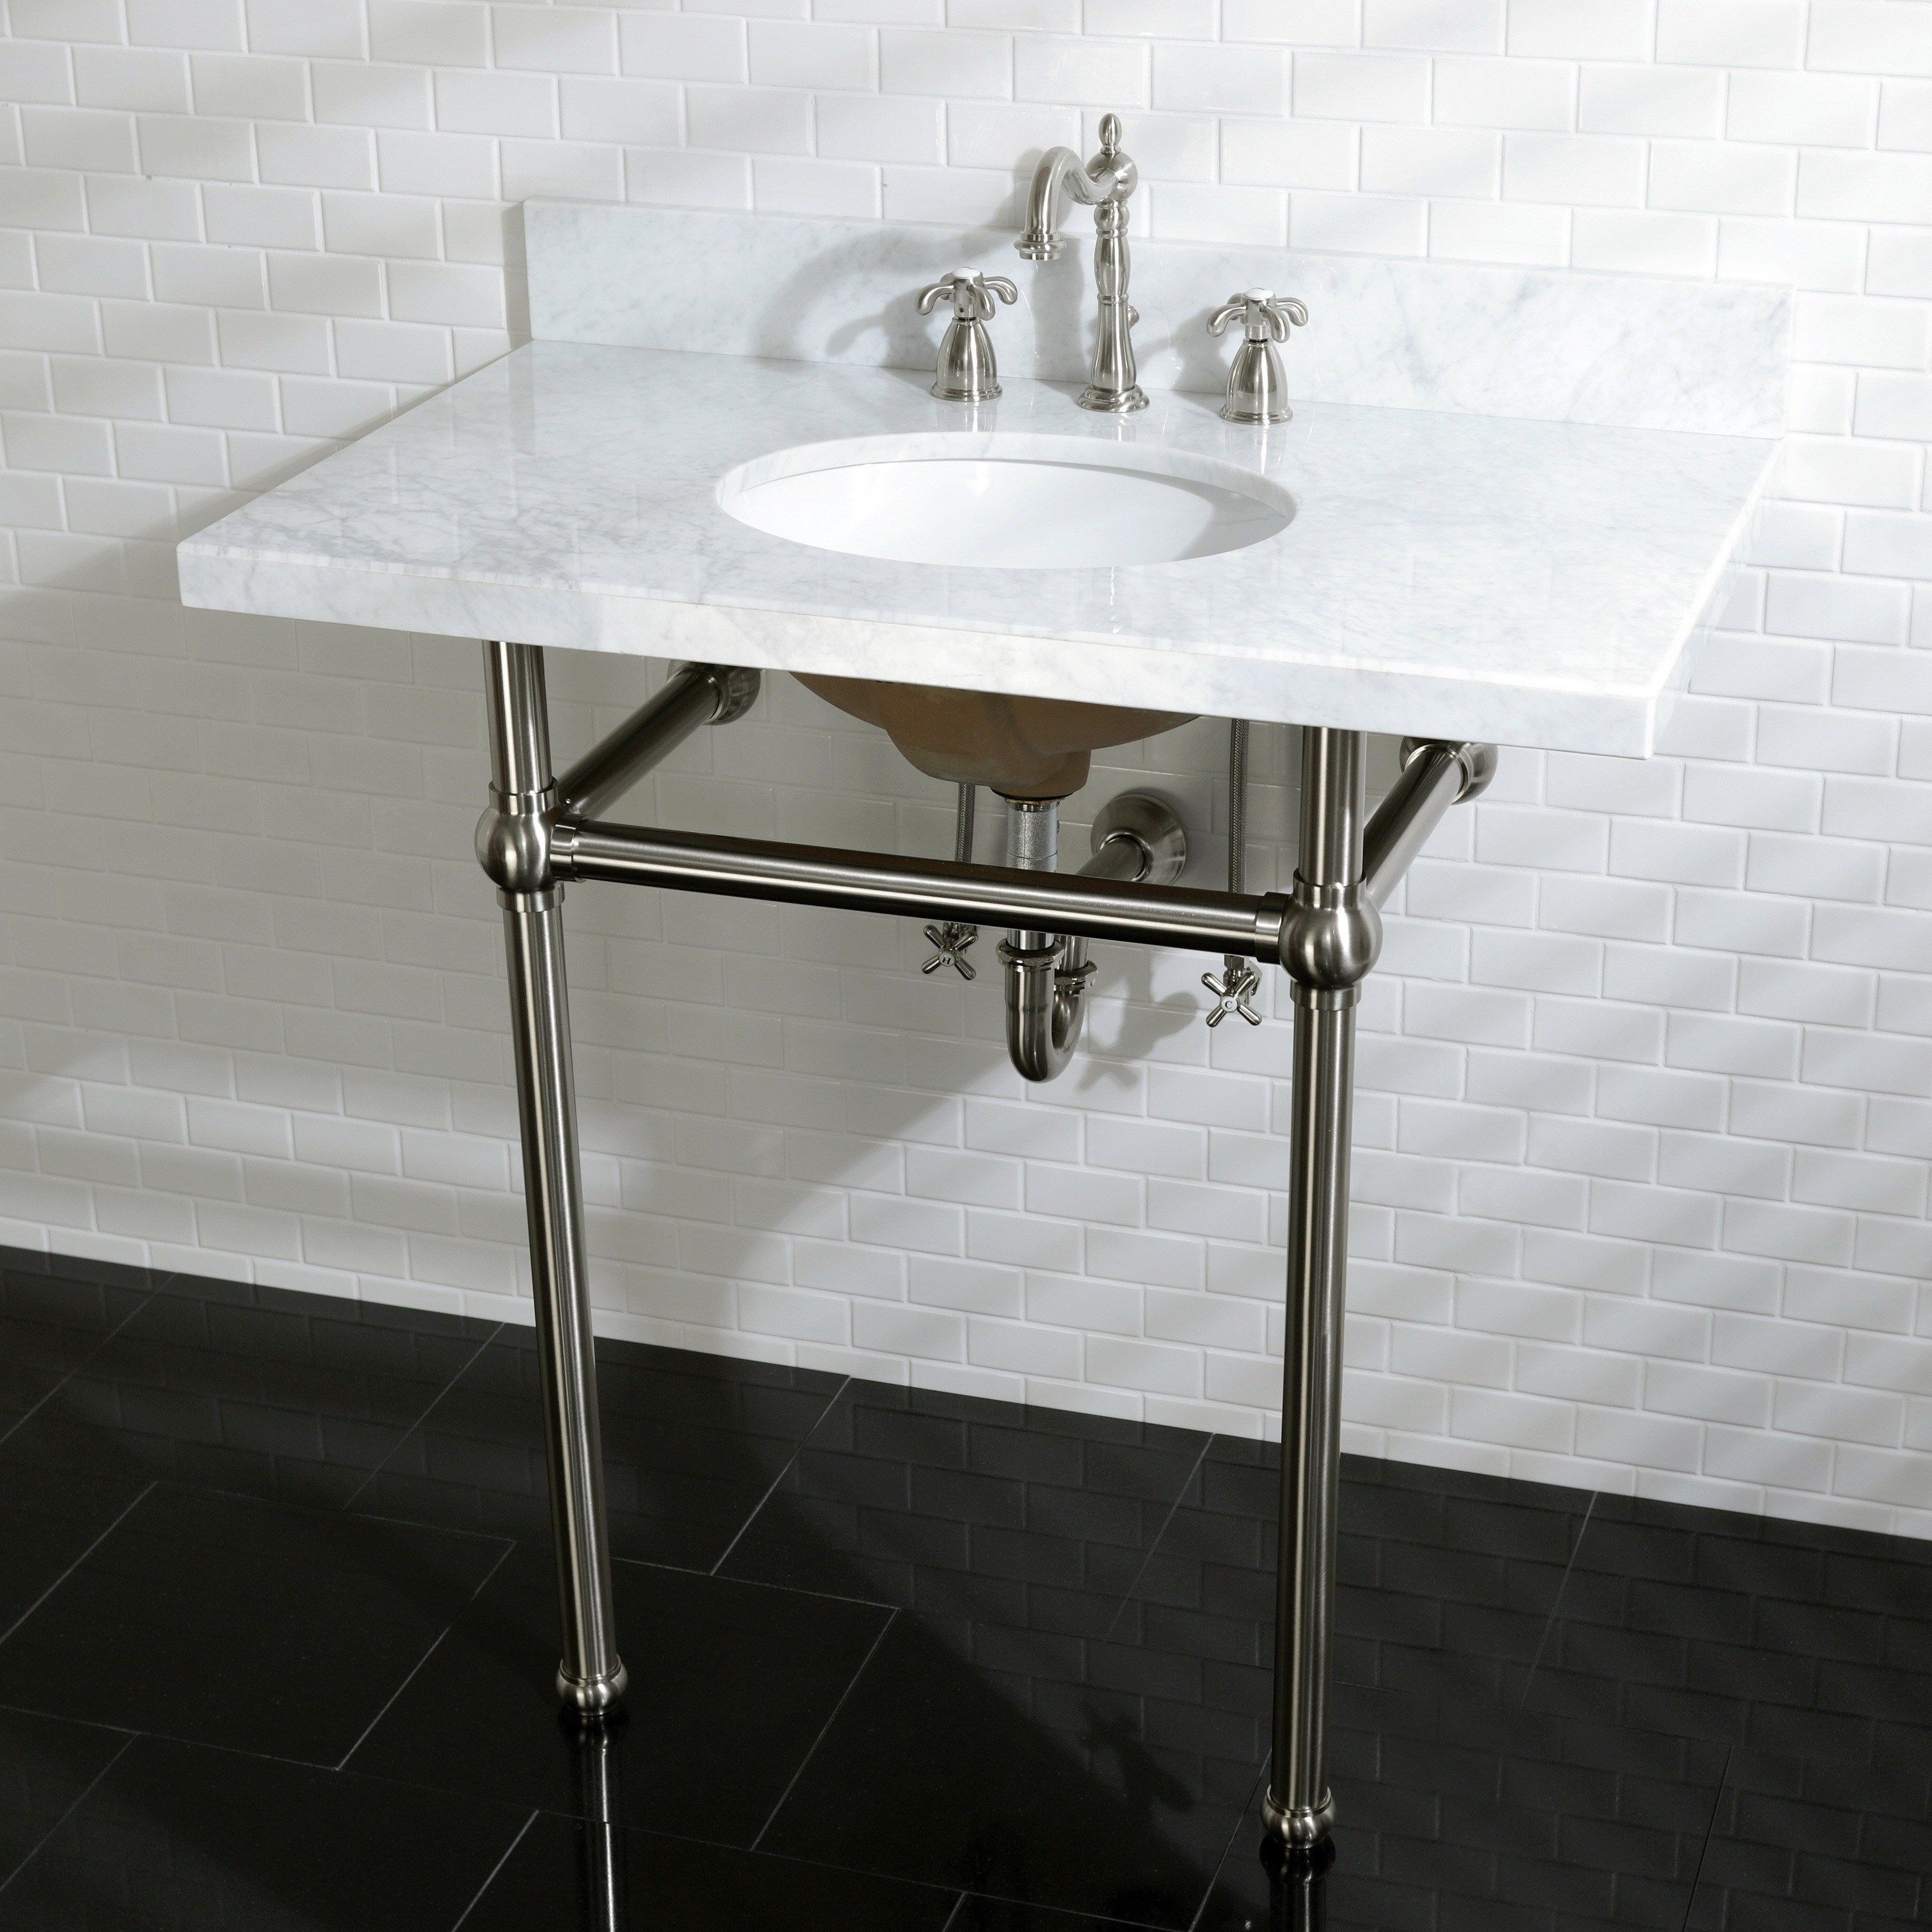 Vintage Carrara Marble 36 Inch Console Sink With Metal Stand Carrara Marble Oil Rubbed Bronze Bronze Finish Brown Kingston Brass Console Sink Sink Bathroom Furniture